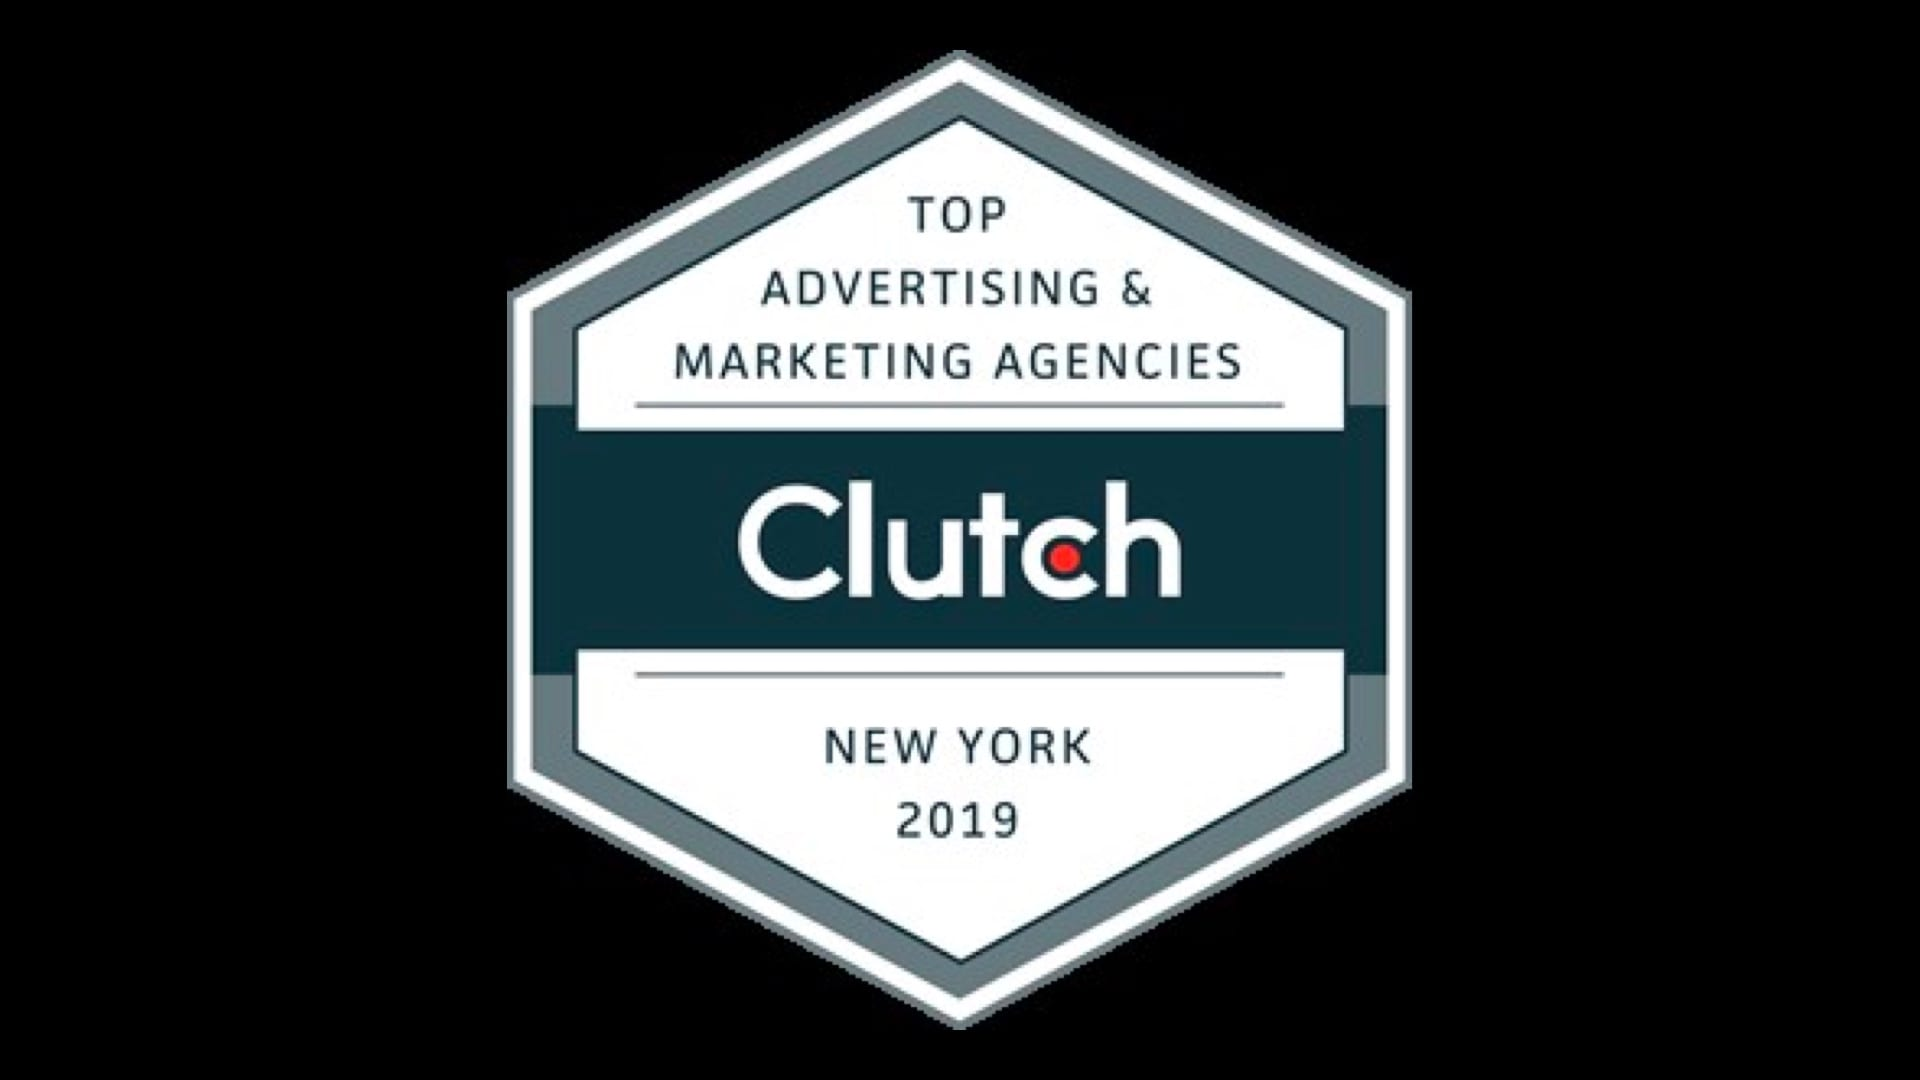 blog photo fishbat Media Named a Top Advertising and Marketing Agency in New York by Clutch-min